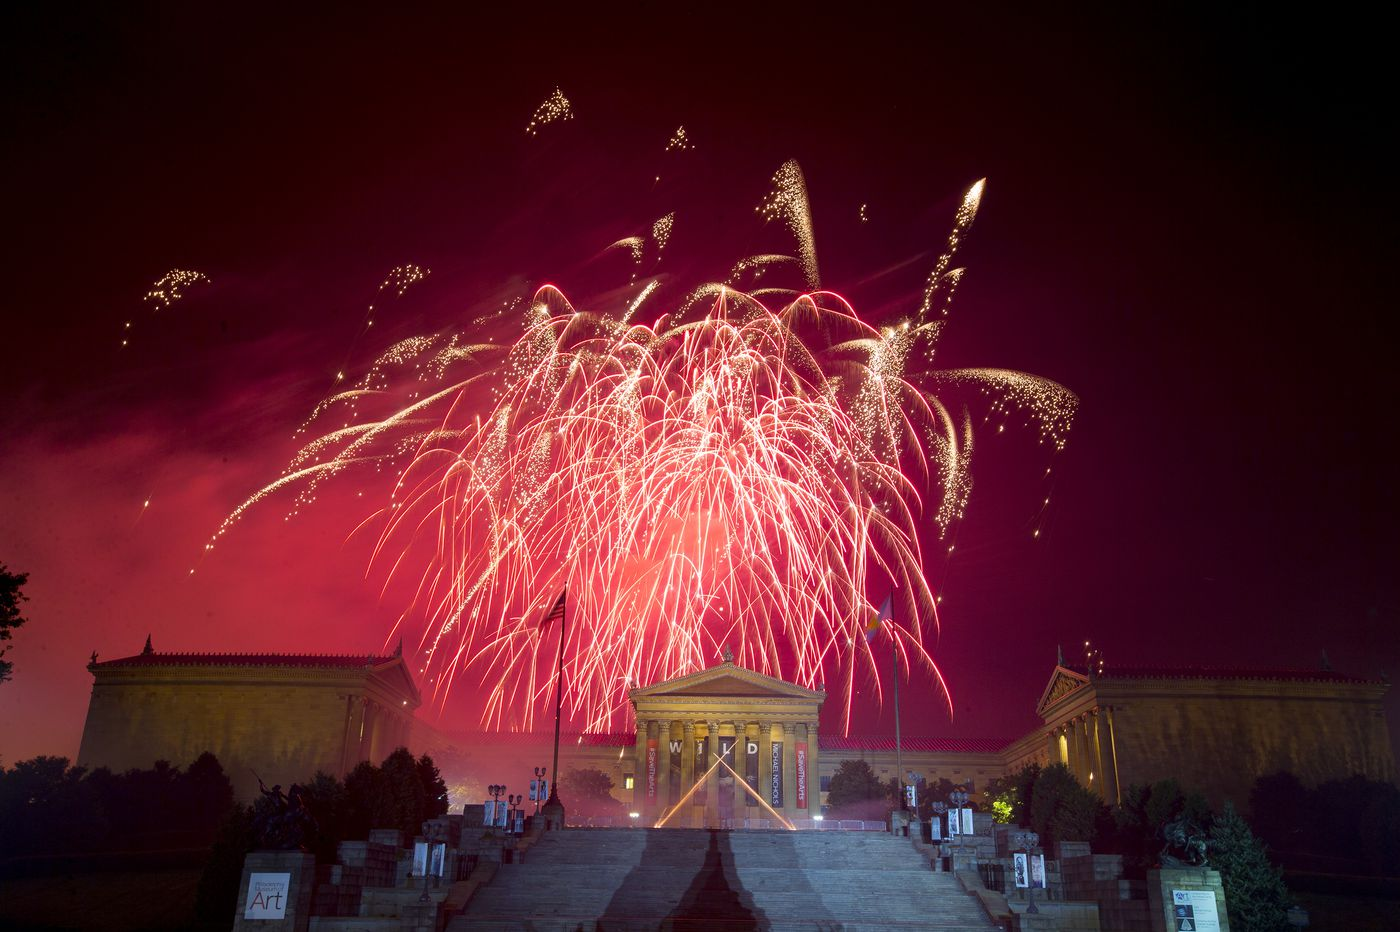 Fireworks killed at least 5 people in 2018. Here's how to stay safe.